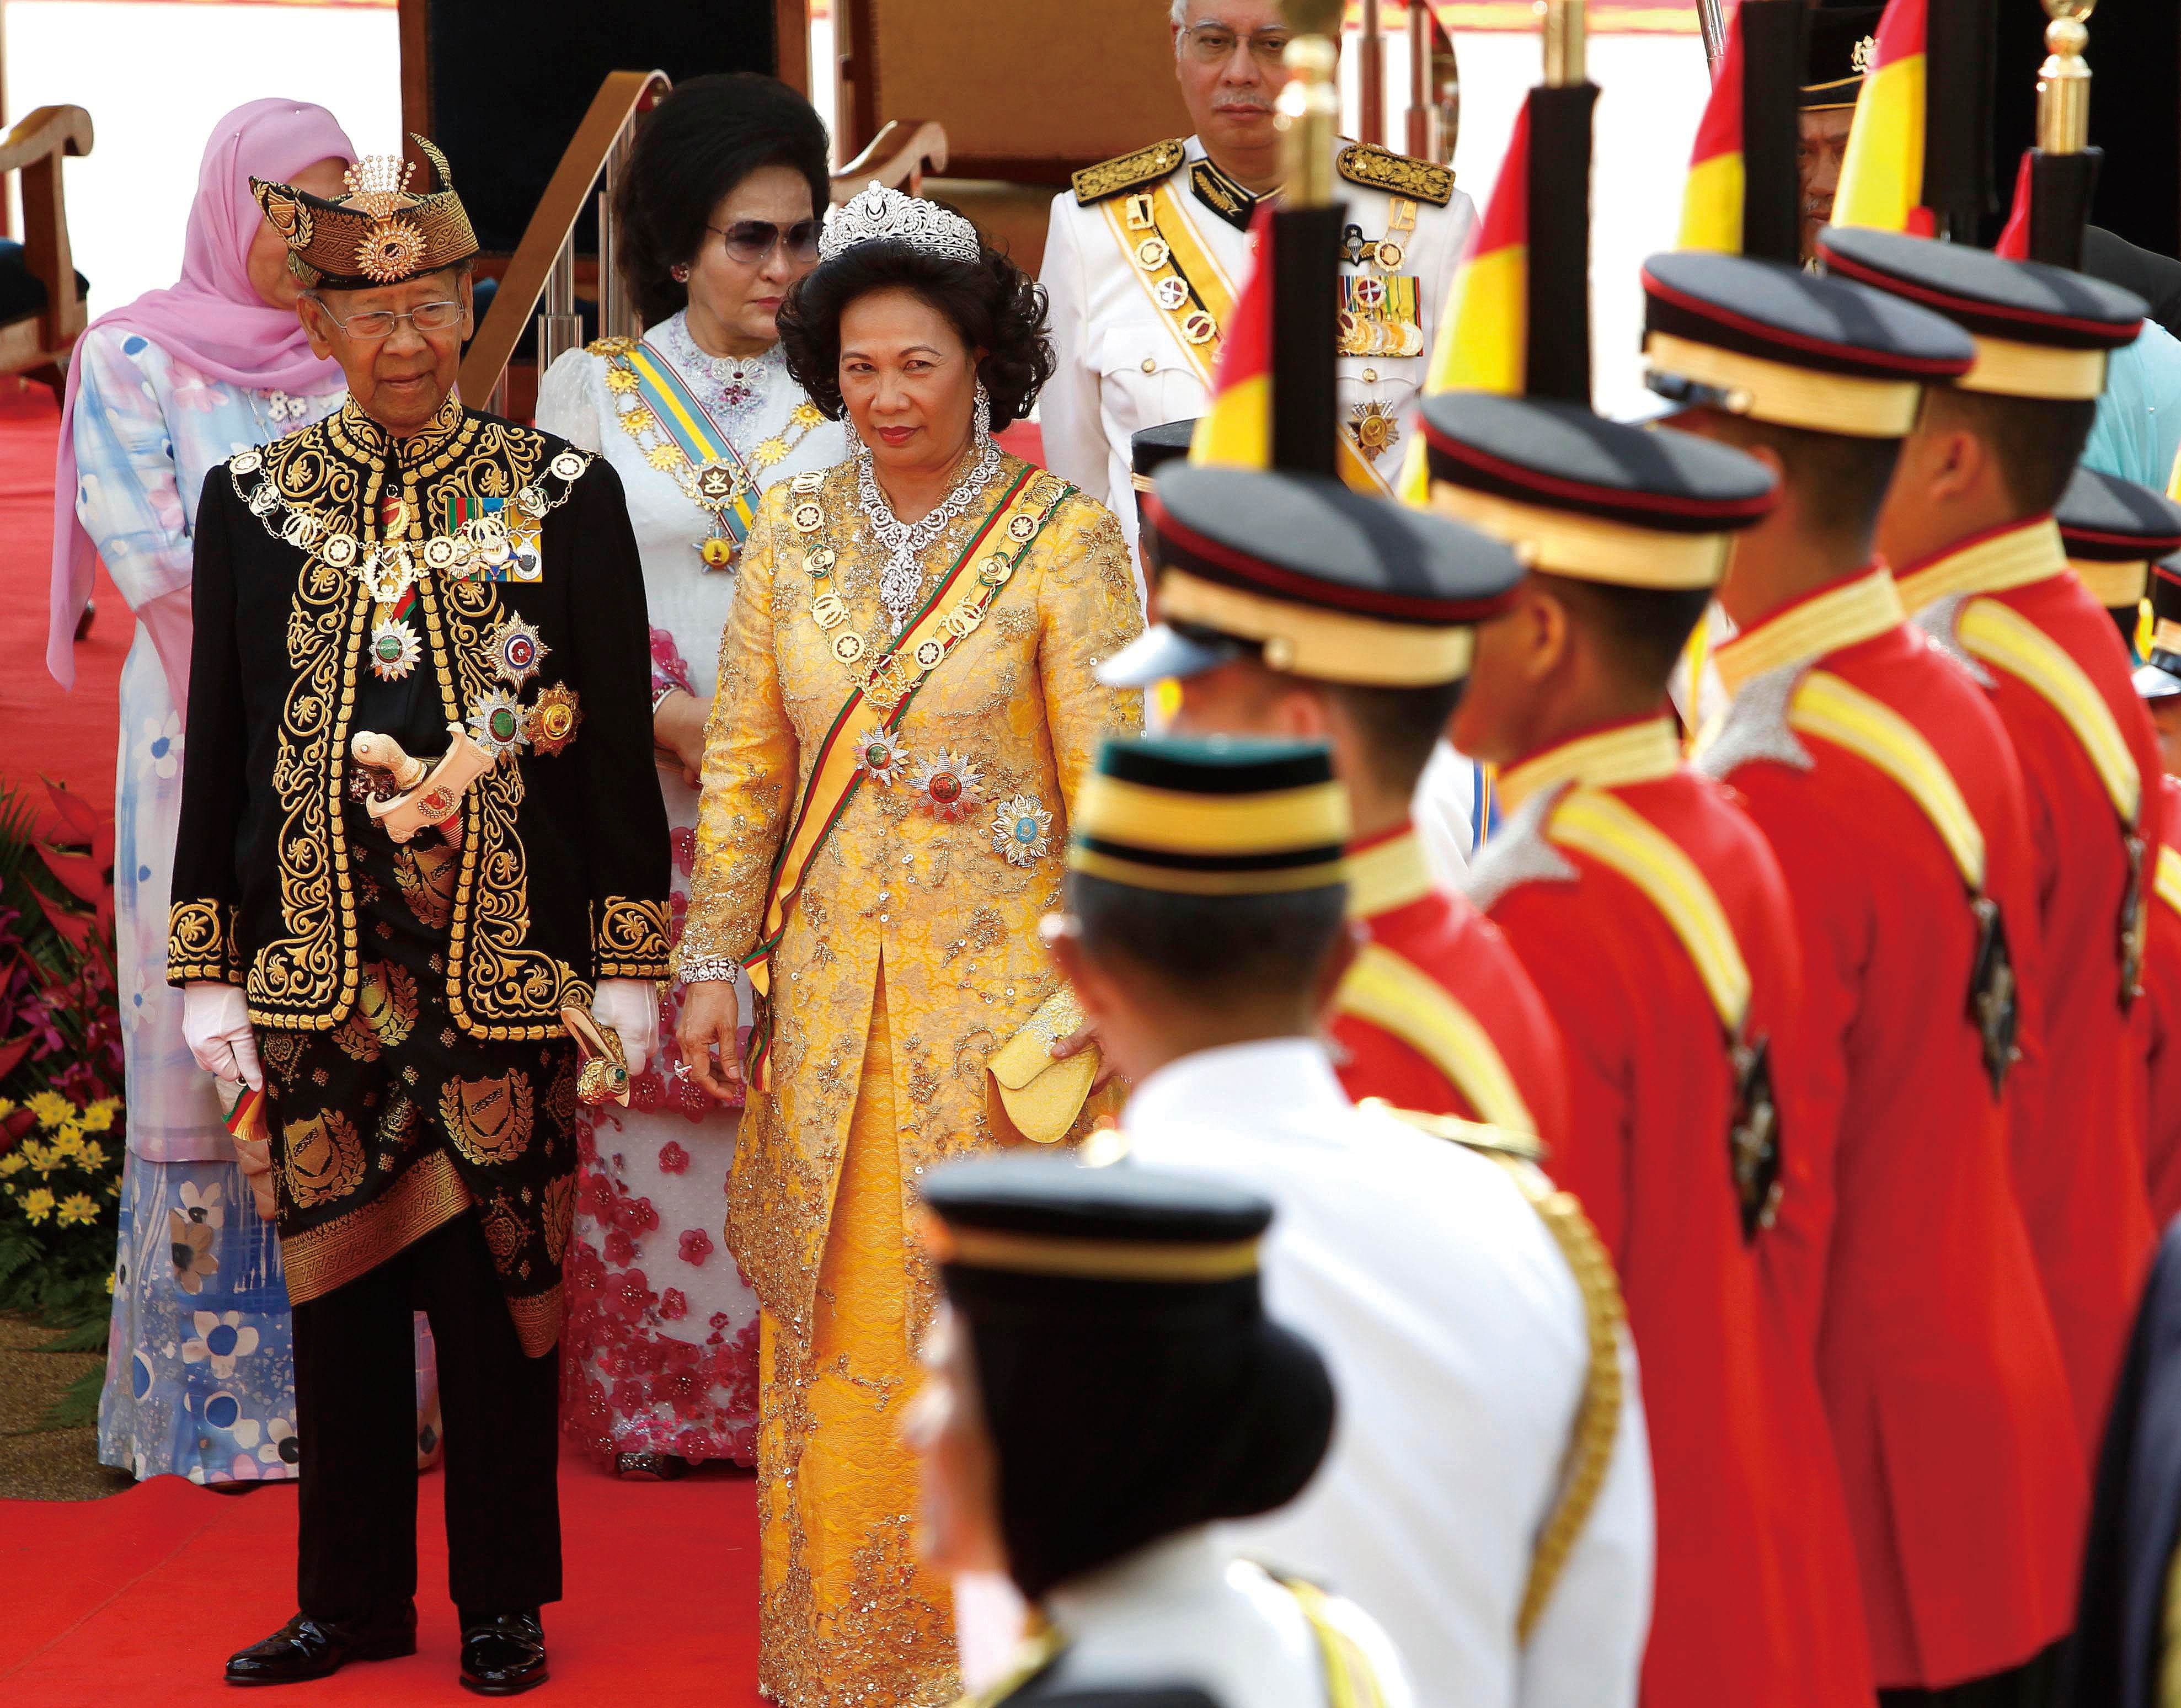 Malaysia's new King Sultan Abdul Halim, front left, Queen Haminah stand on the red carpet during a welcoming ceremony at the Parliament Square in Kual...